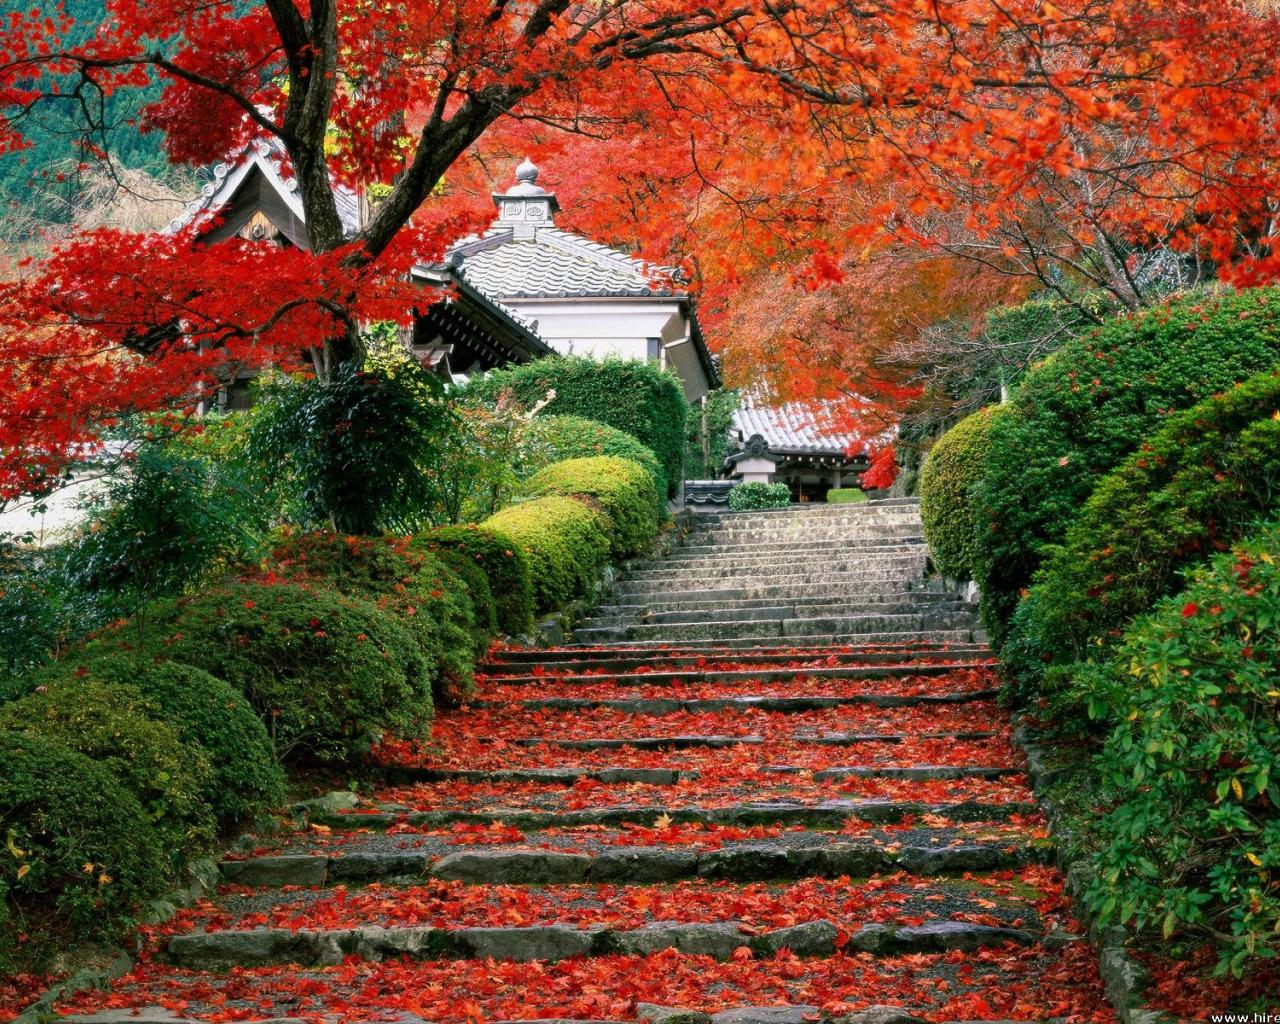 Wallpaper Tags: autumn stairways japanese garden stairs